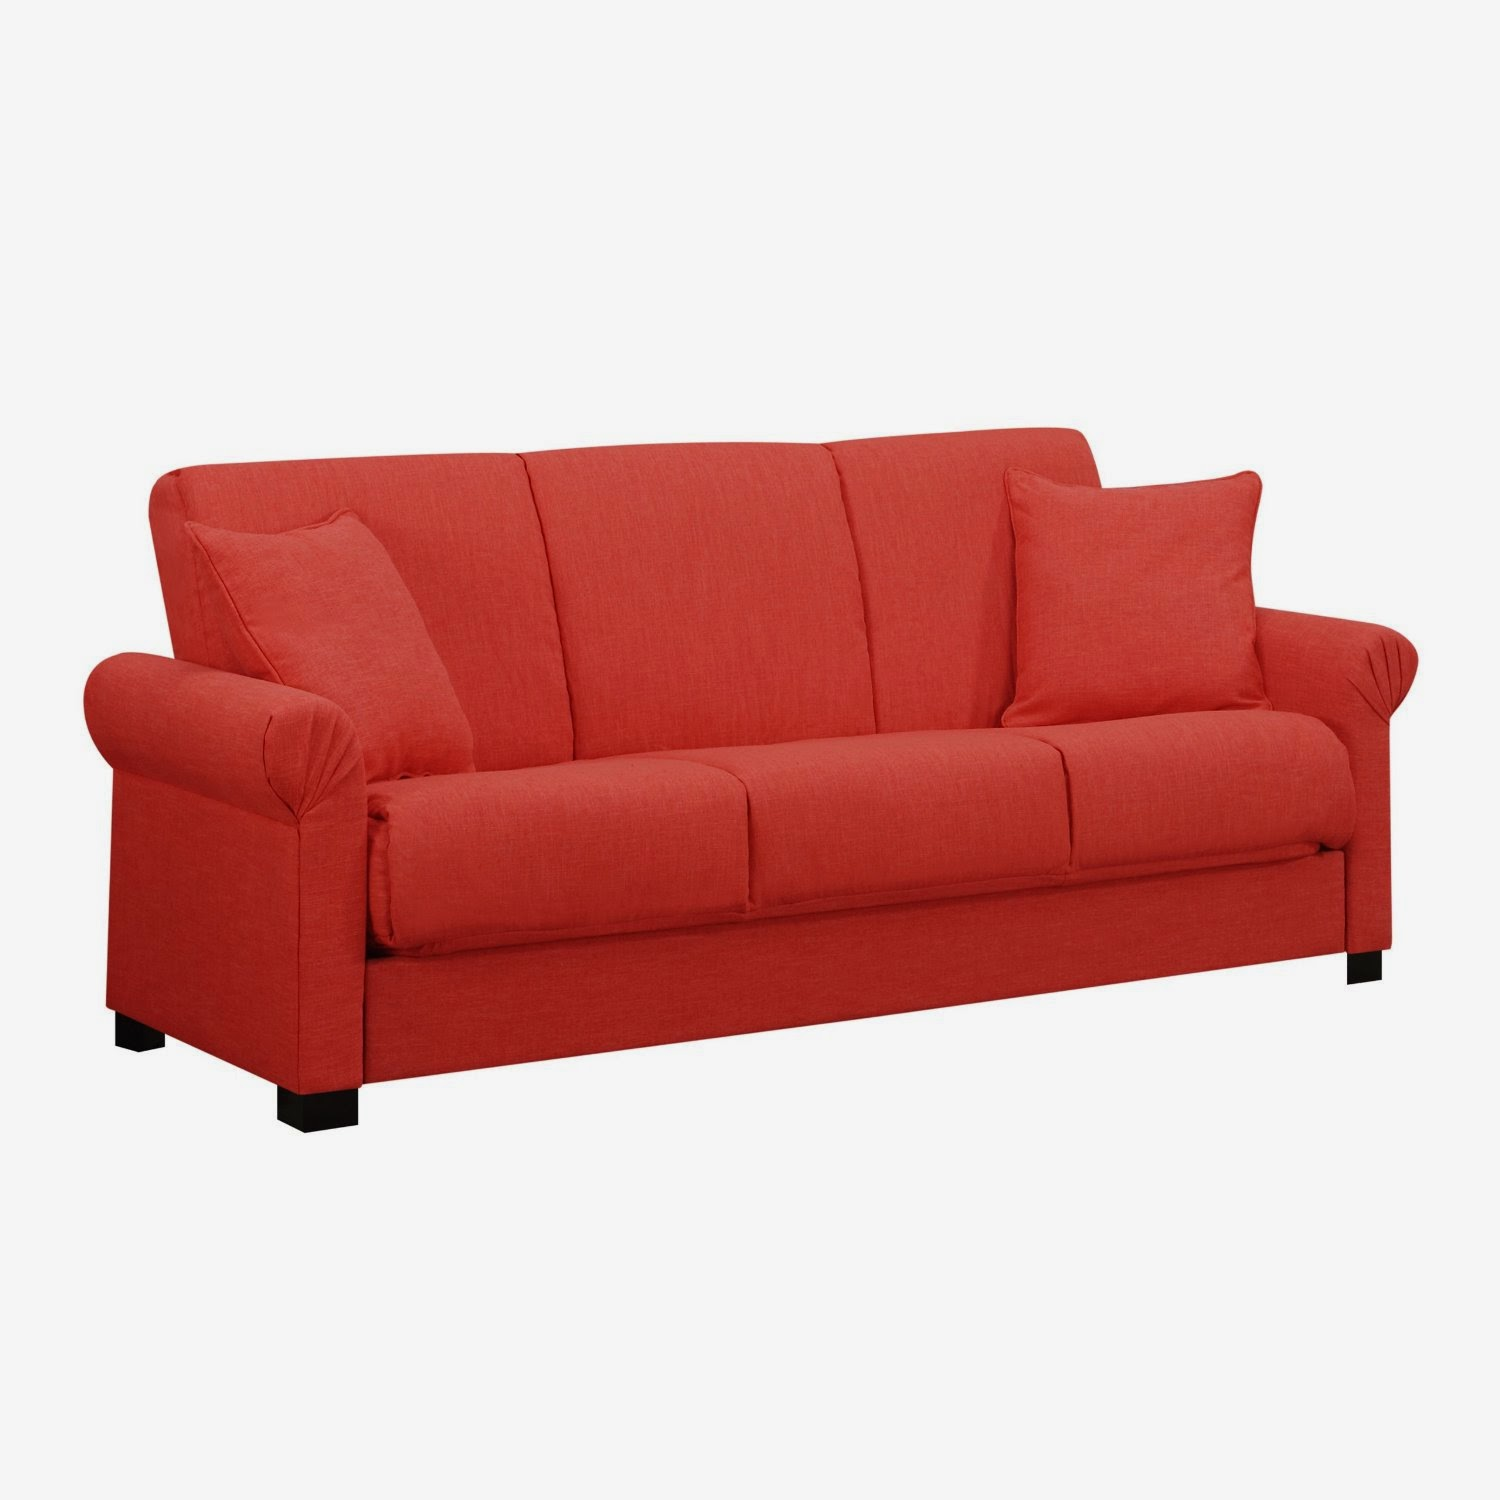 slide out sofa beds target bed pull couch